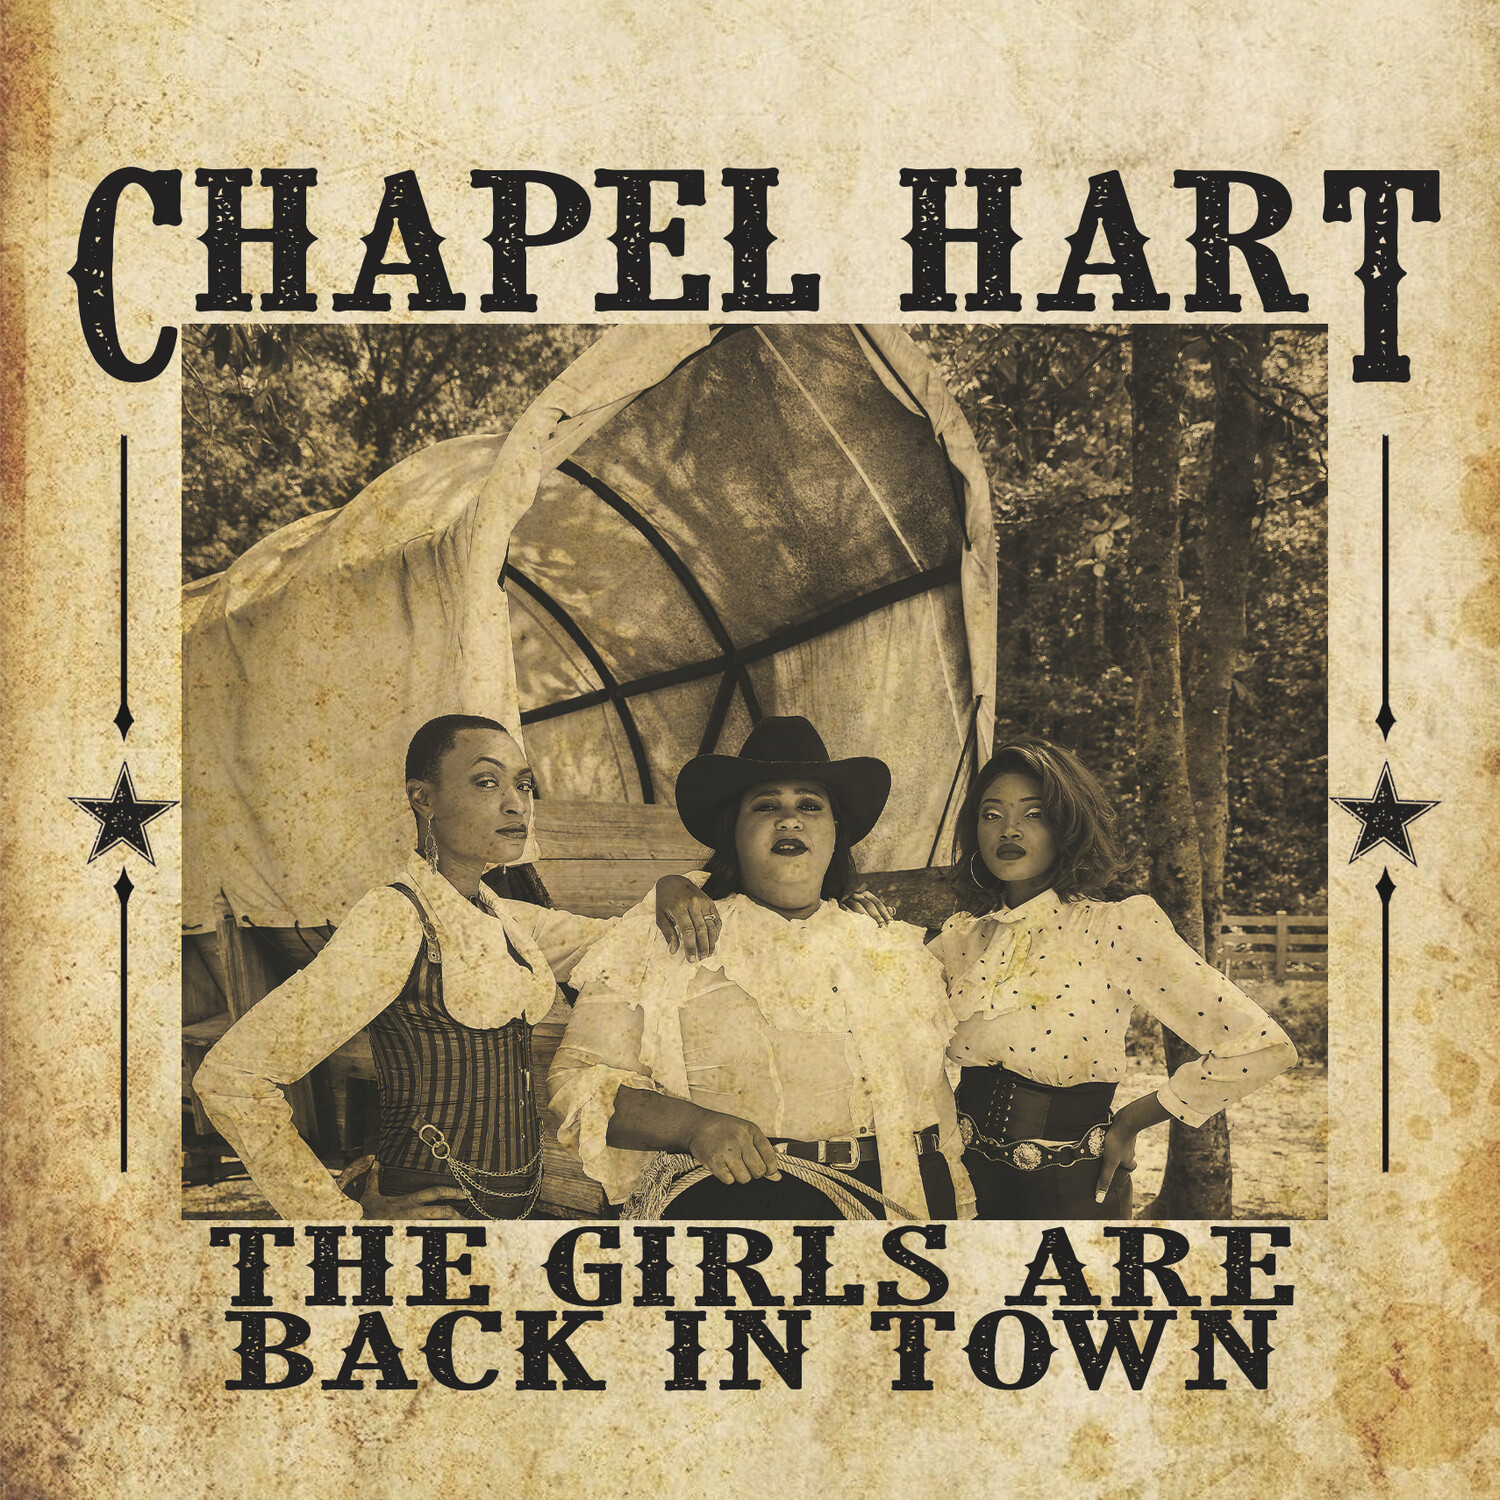 chapel hart the girls are back in town